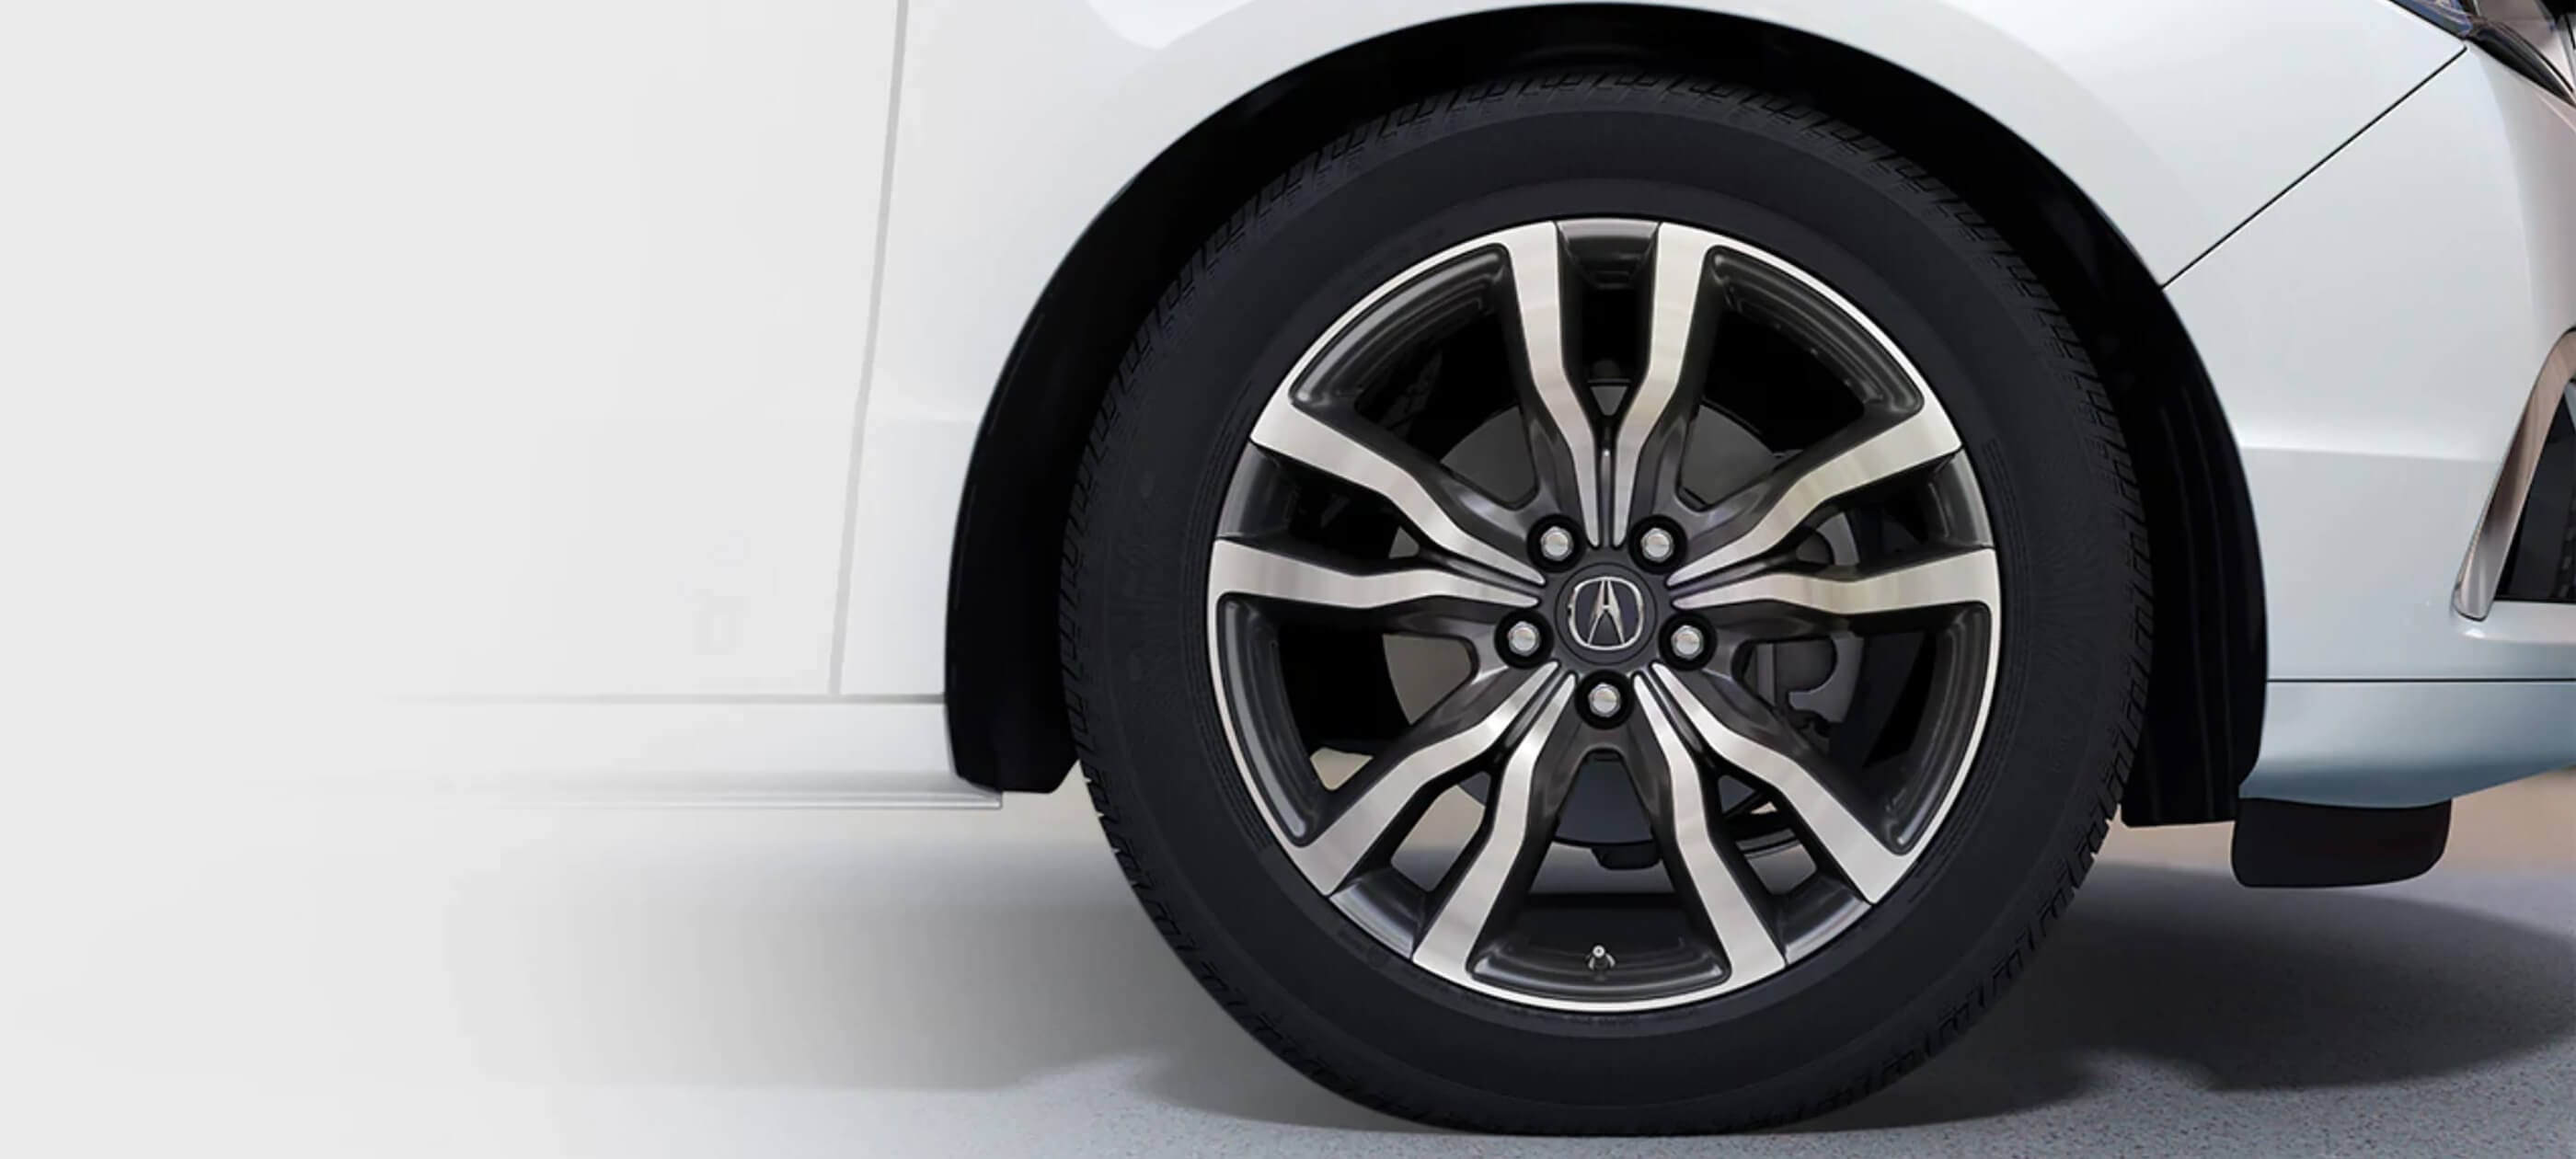 20-Inch Alloy Wheel